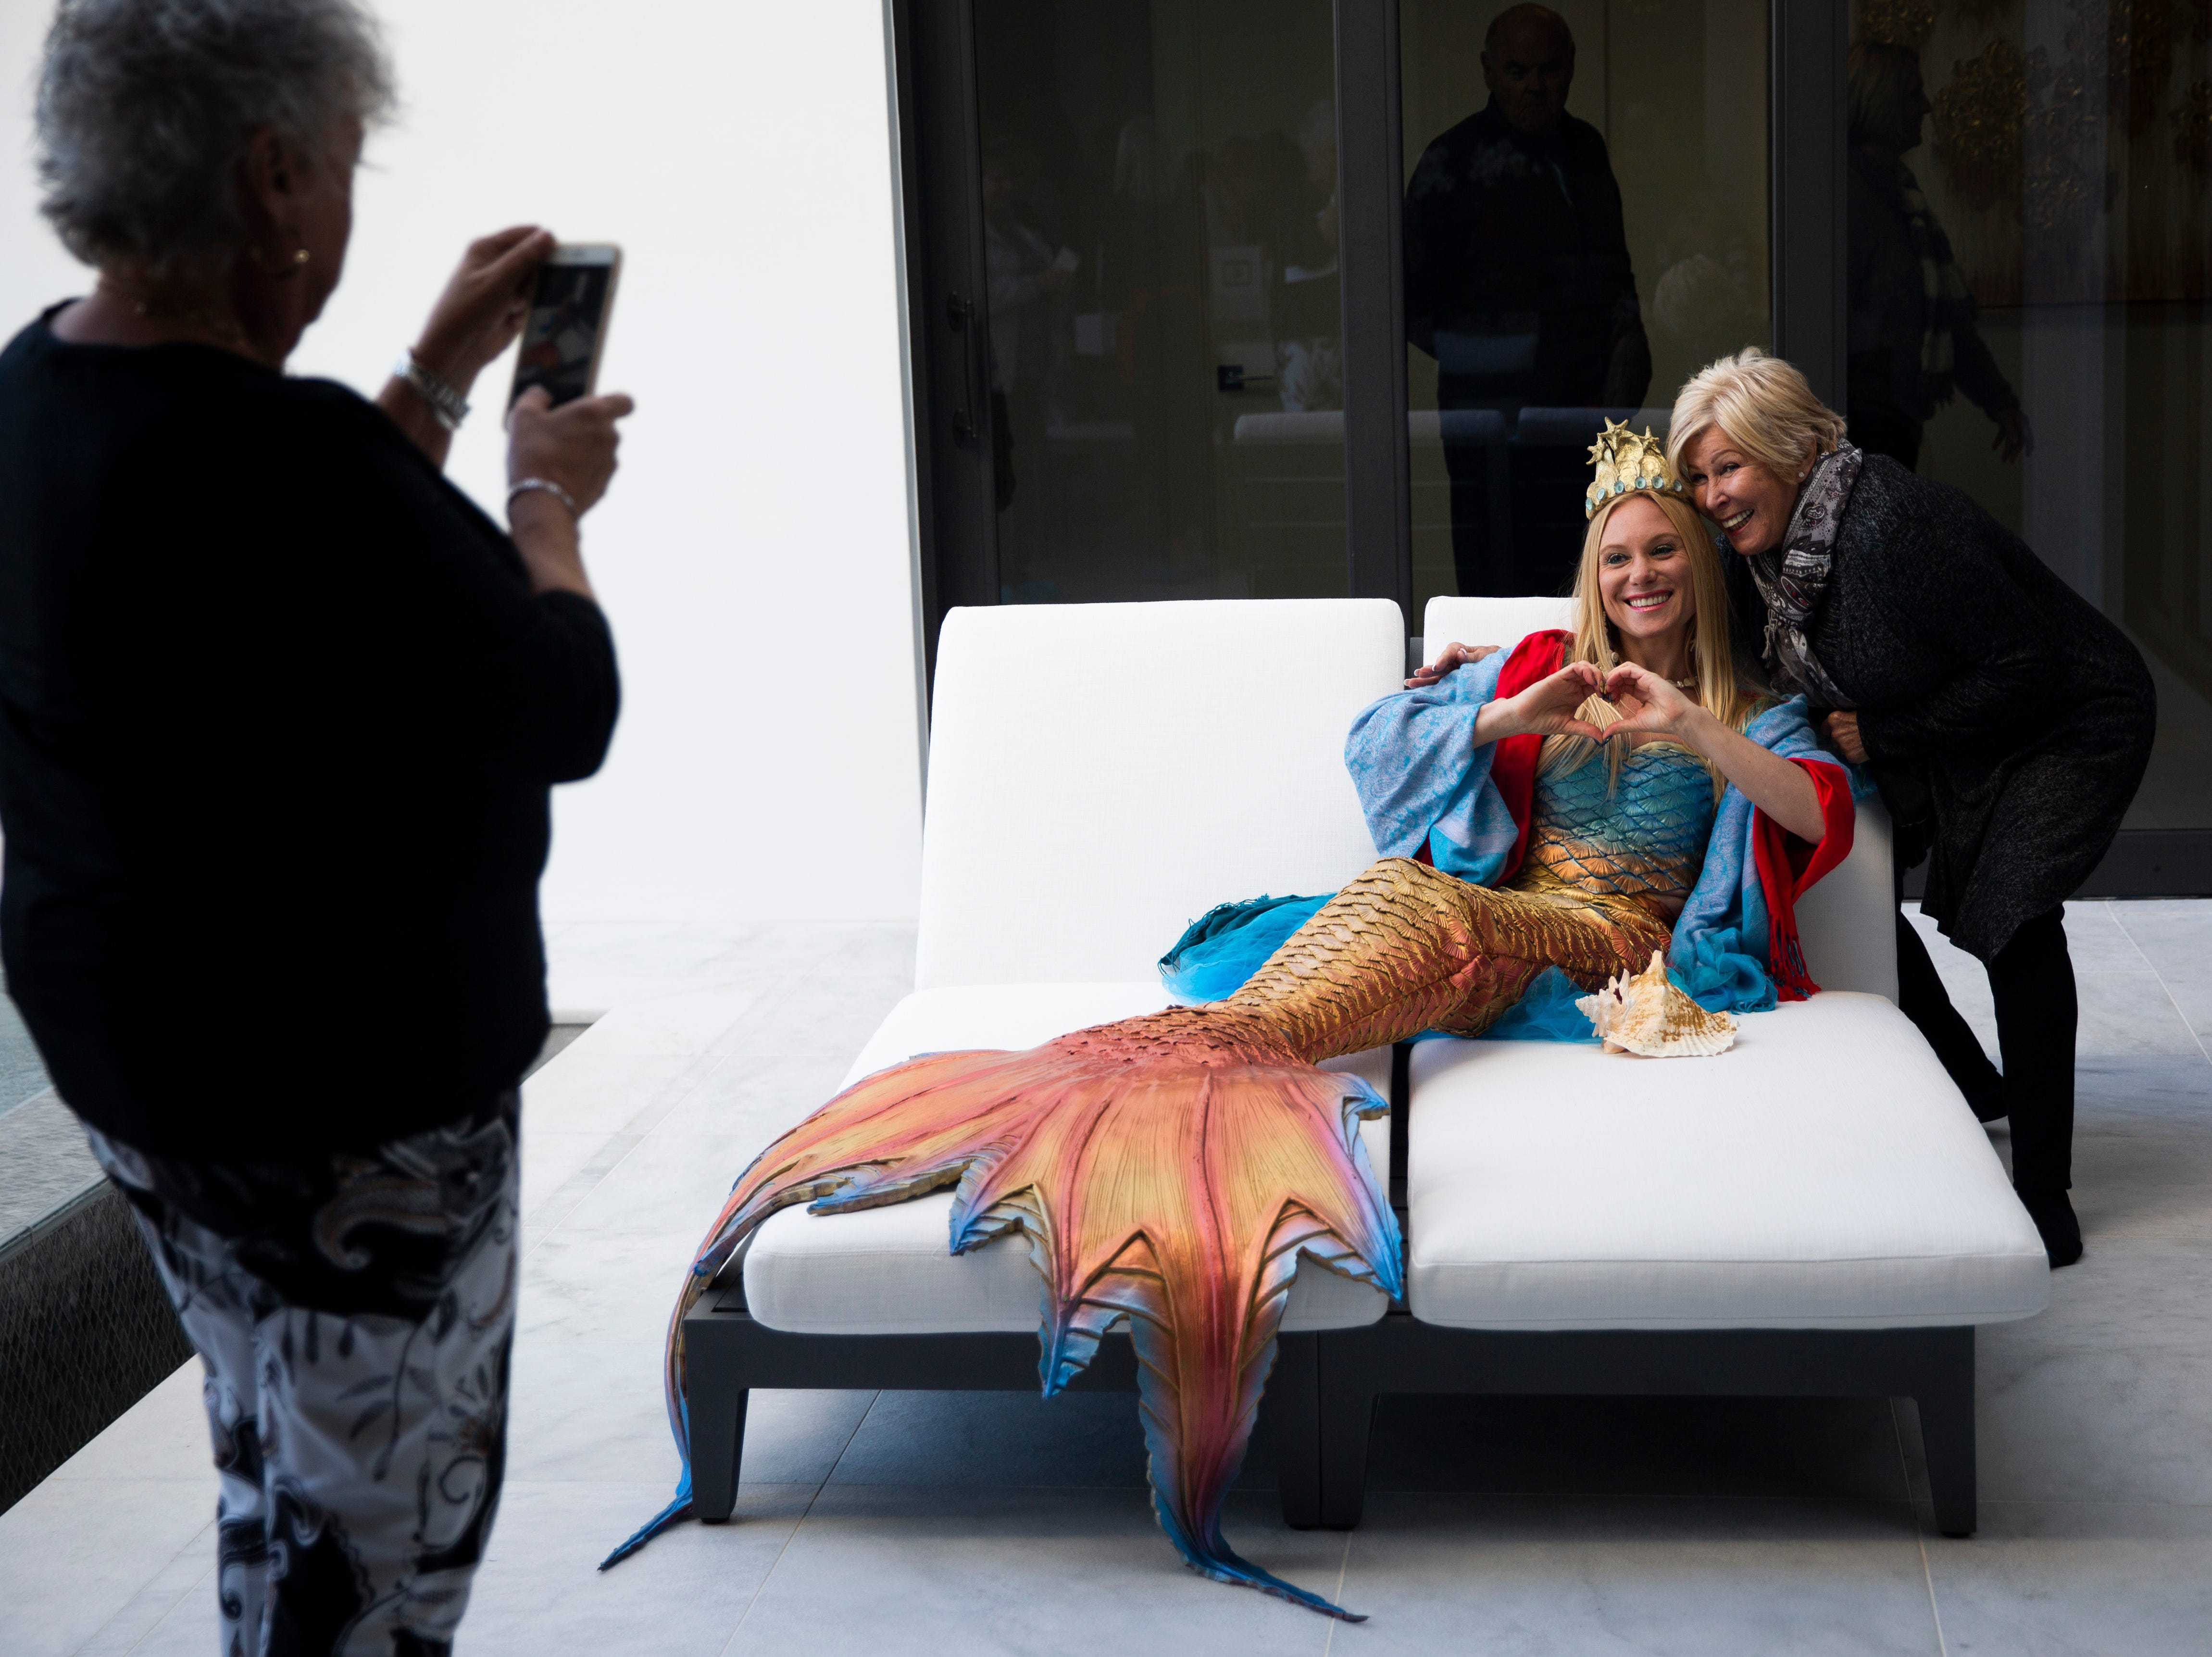 Joanie Zuckerman takes a photo of Pam Schultz as she poses with Shelley McKernan, also known as Sea Shelley, during the 7th annual Kitchen Tour, hosted by the Naples Woman's Club in Naples on Wednesday, January 16, 2019.